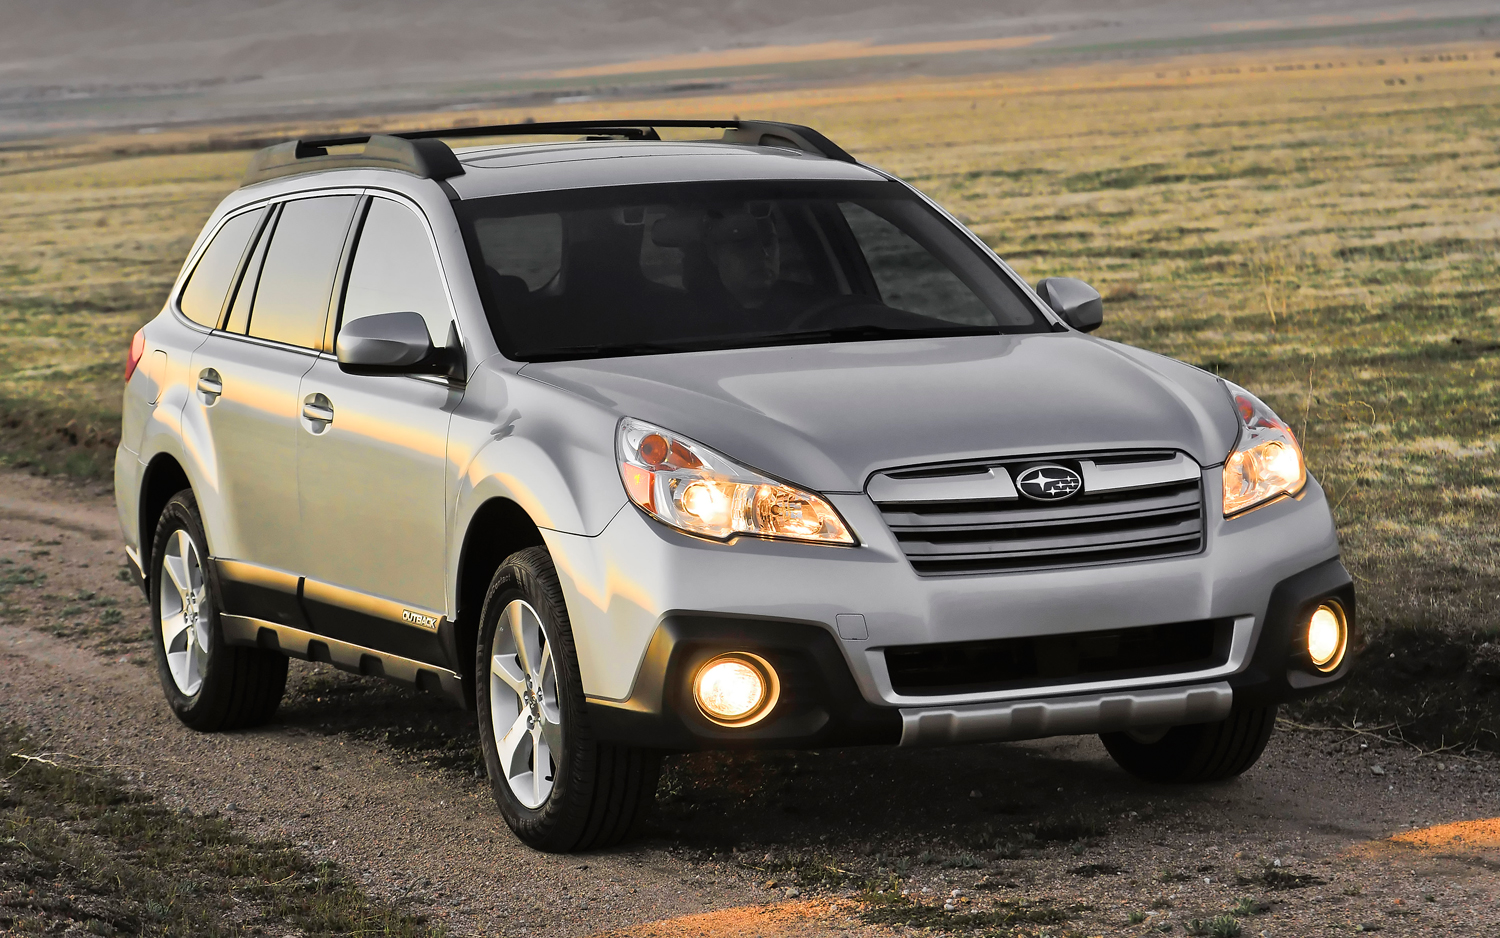 2014 subaru outback 2014 legacy get minor price bumps motor trend rh motortrend com 2014 subaru outback owner's manual pdf 2013 subaru outback user's manual